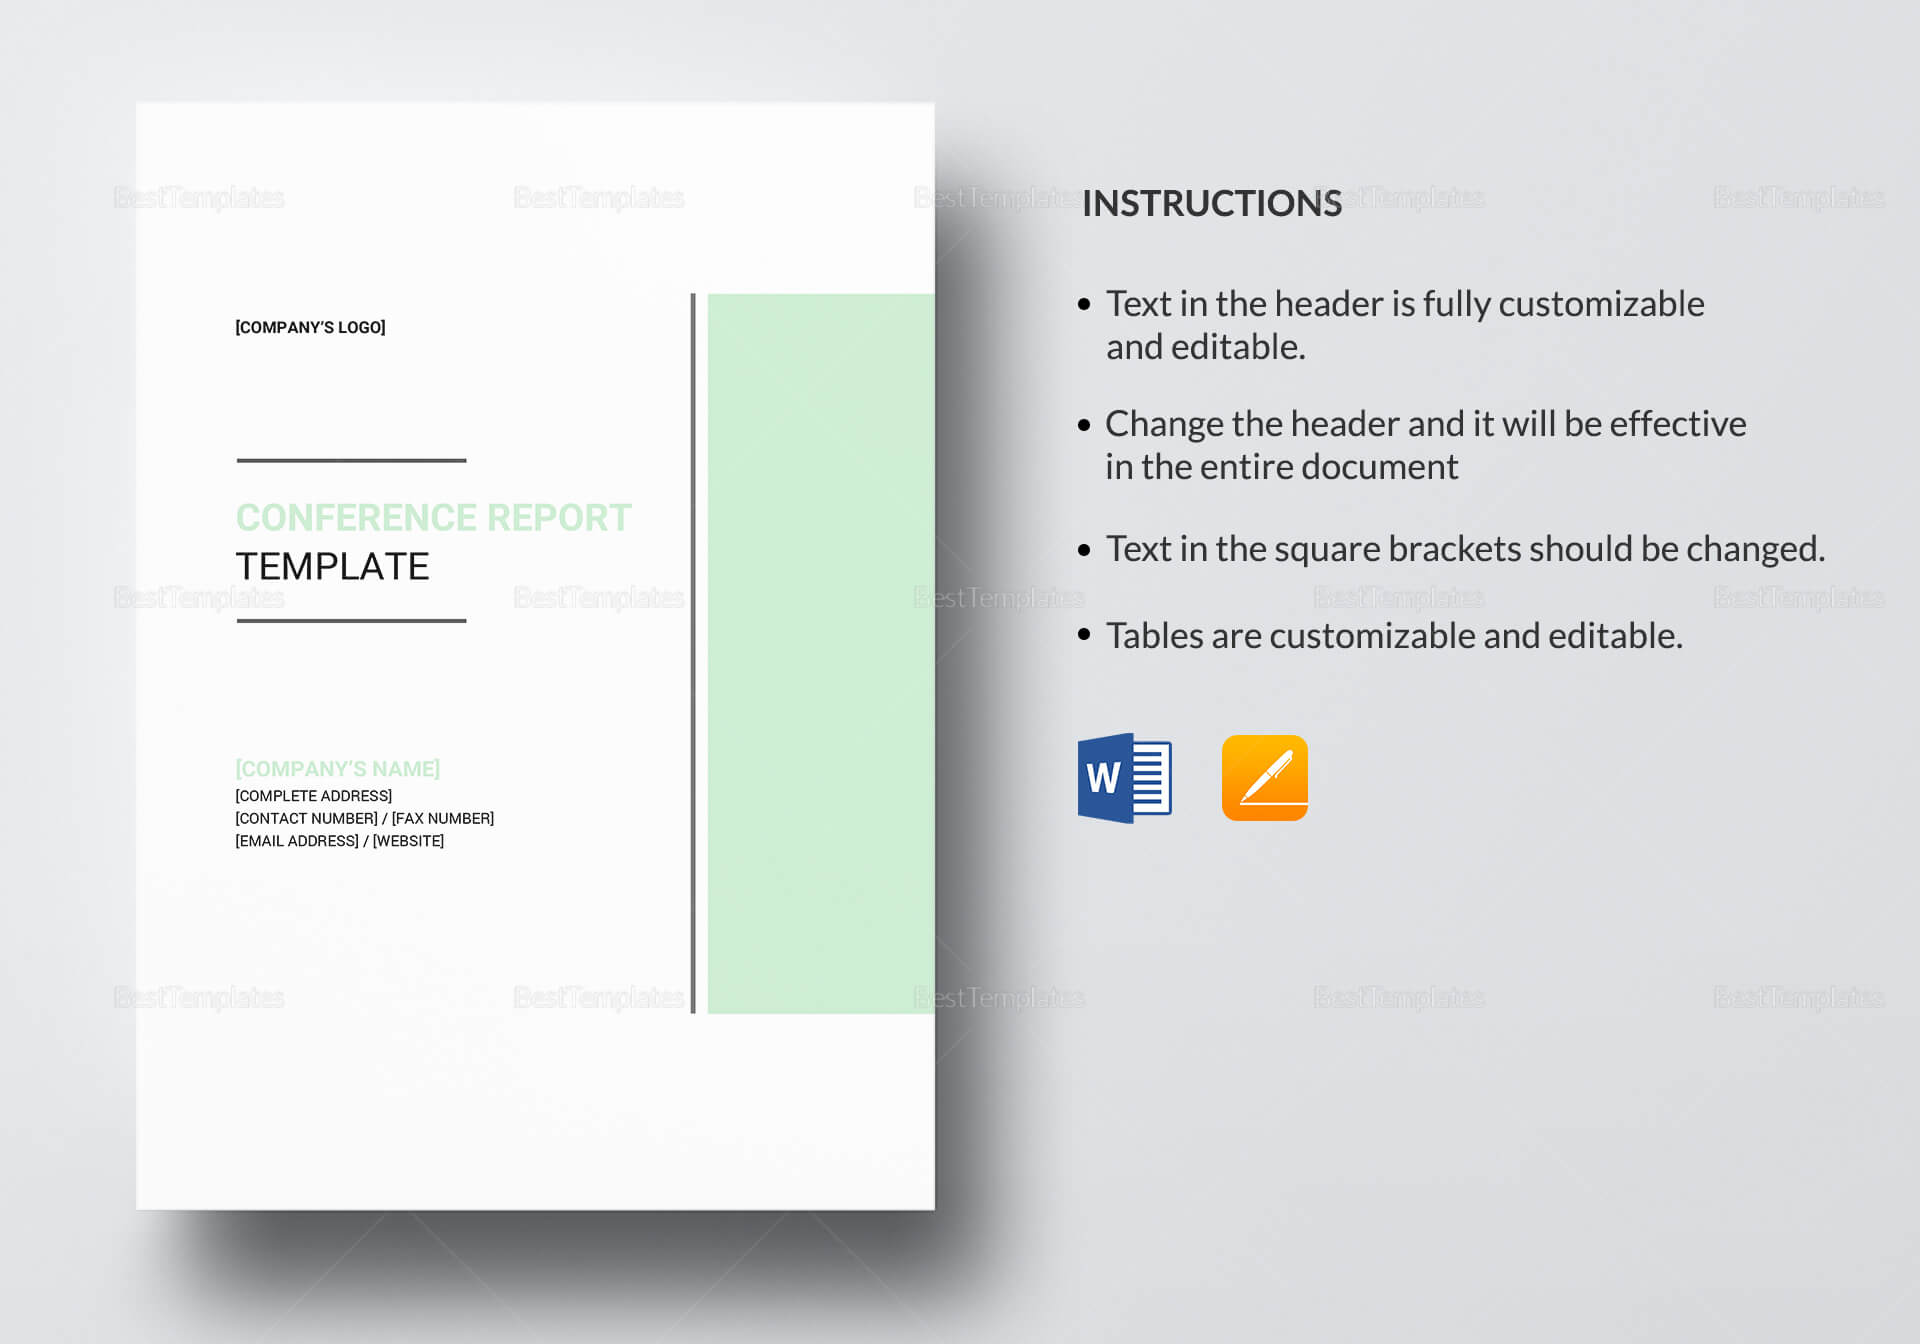 Conference Report Template regarding Conference Report Template